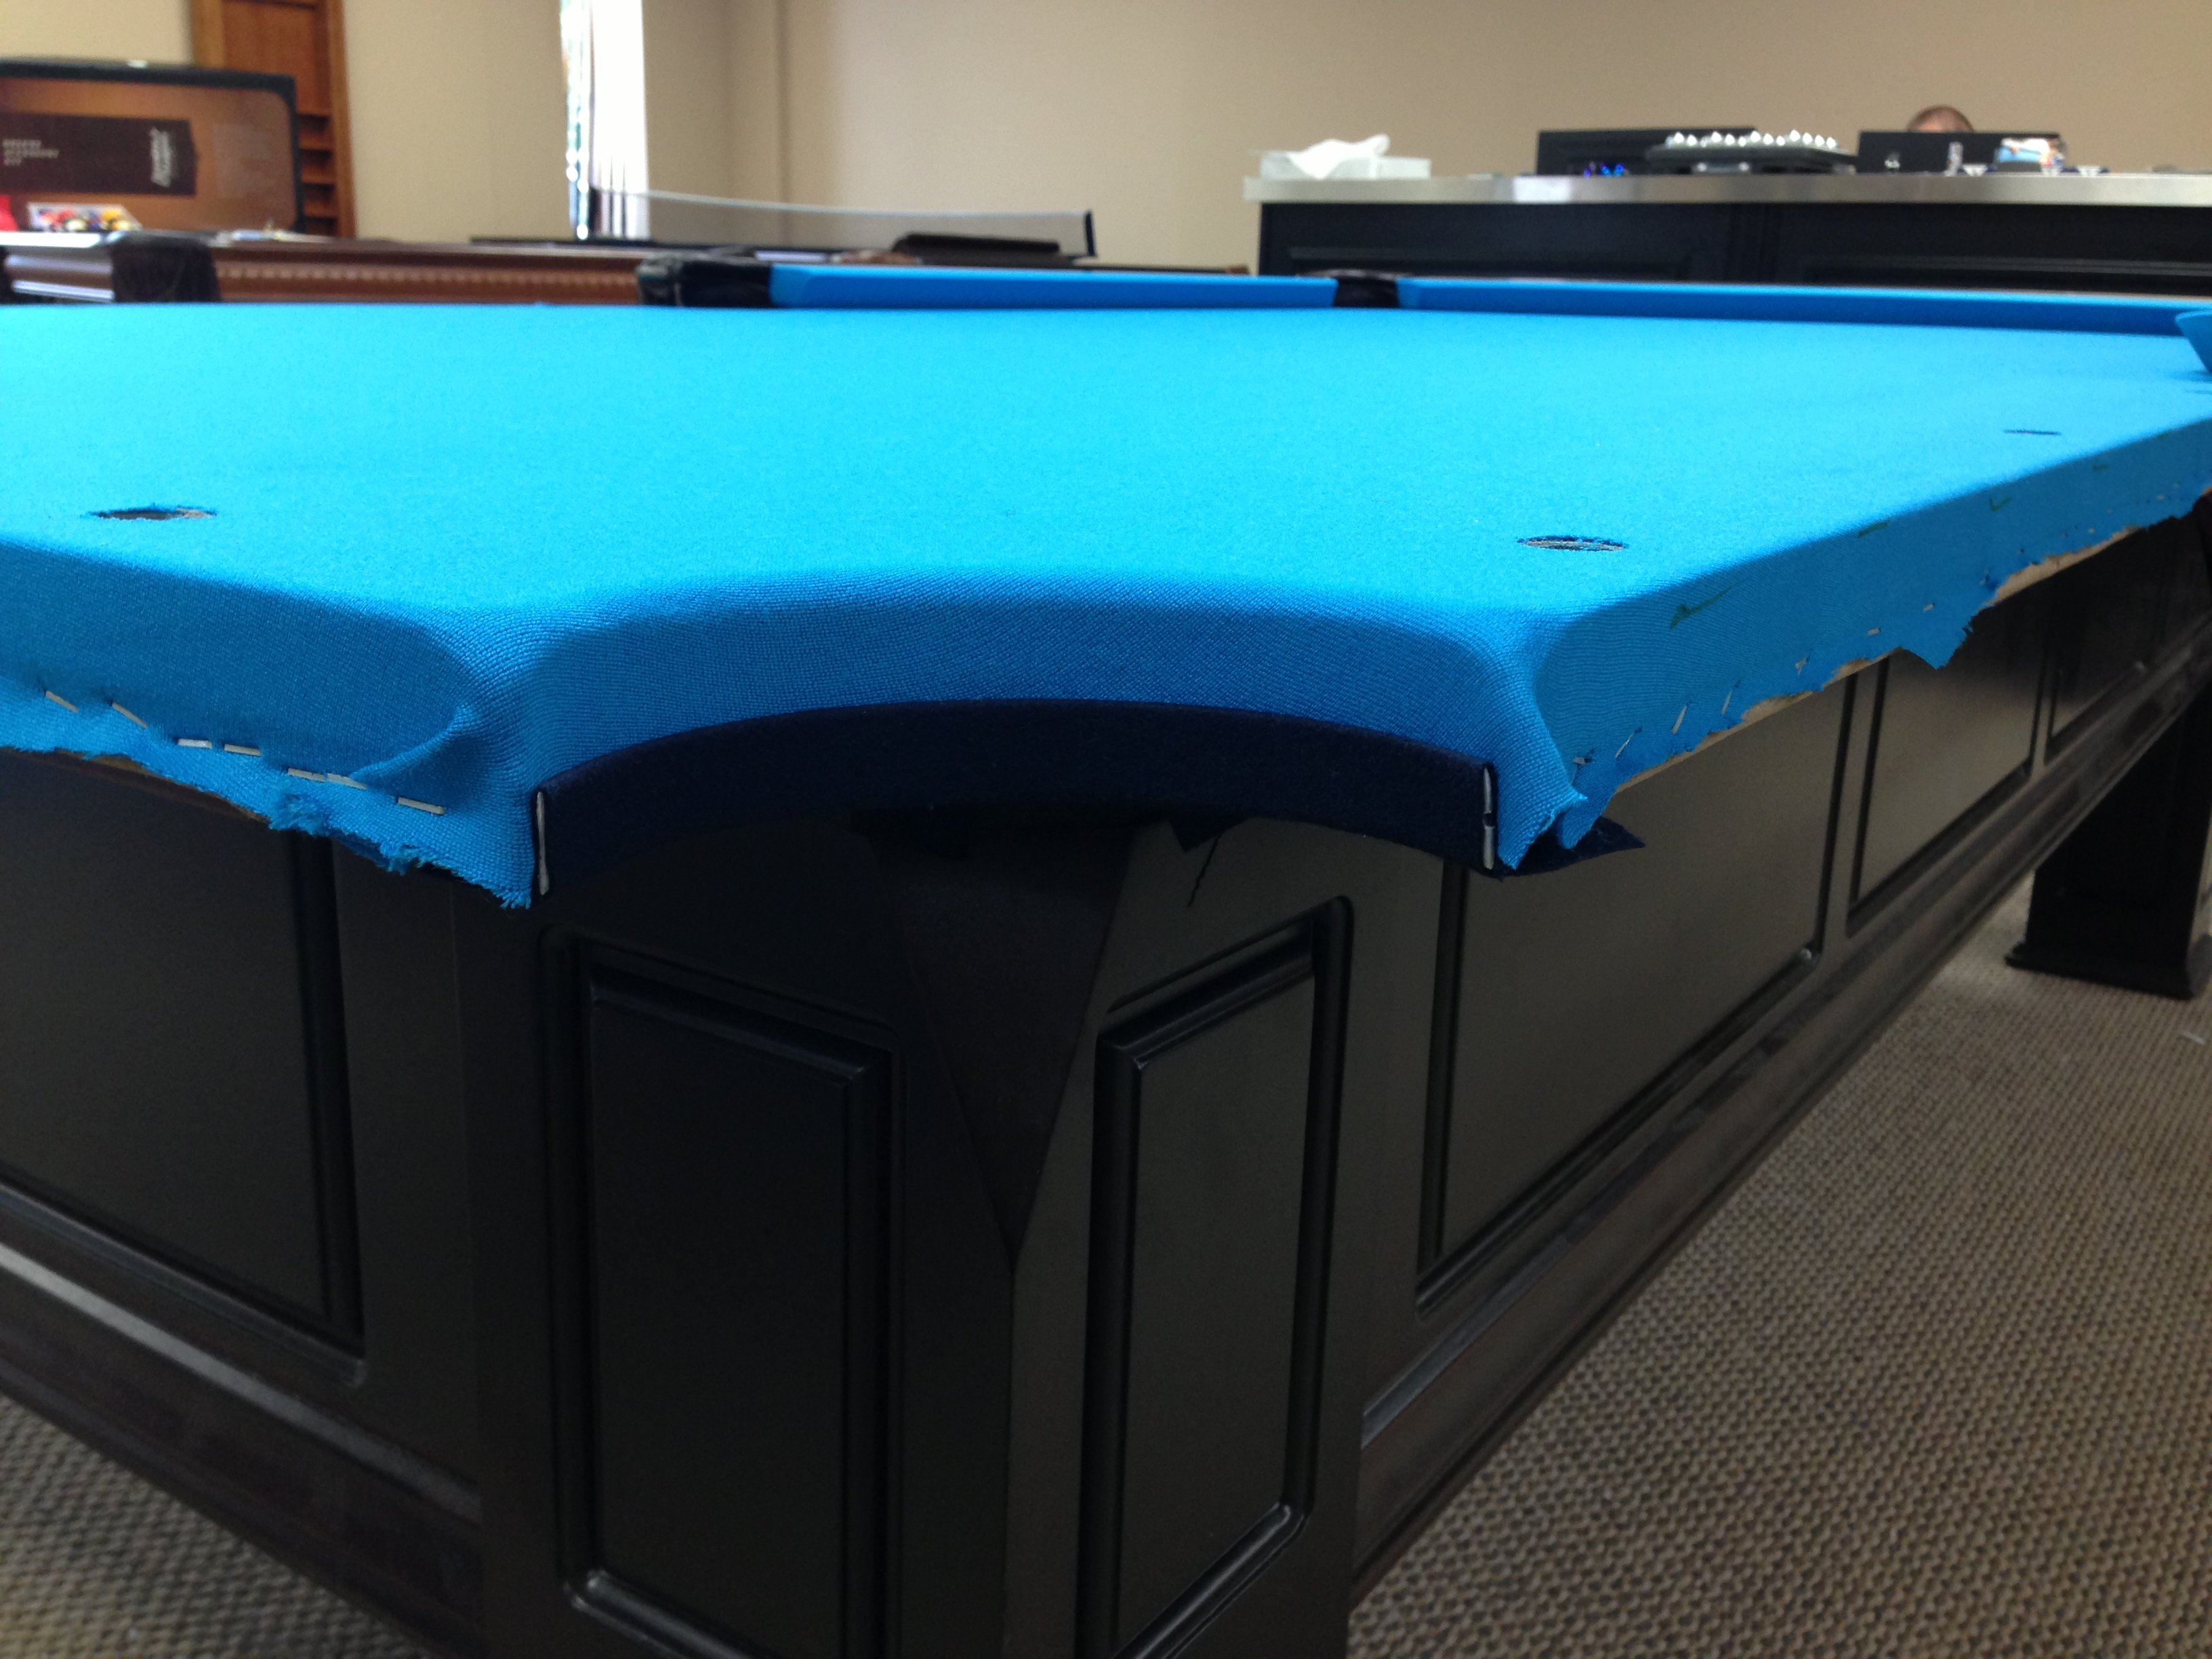 Pool Table ReFelt AK Pool Tables LLC - How to put felt on a pool table